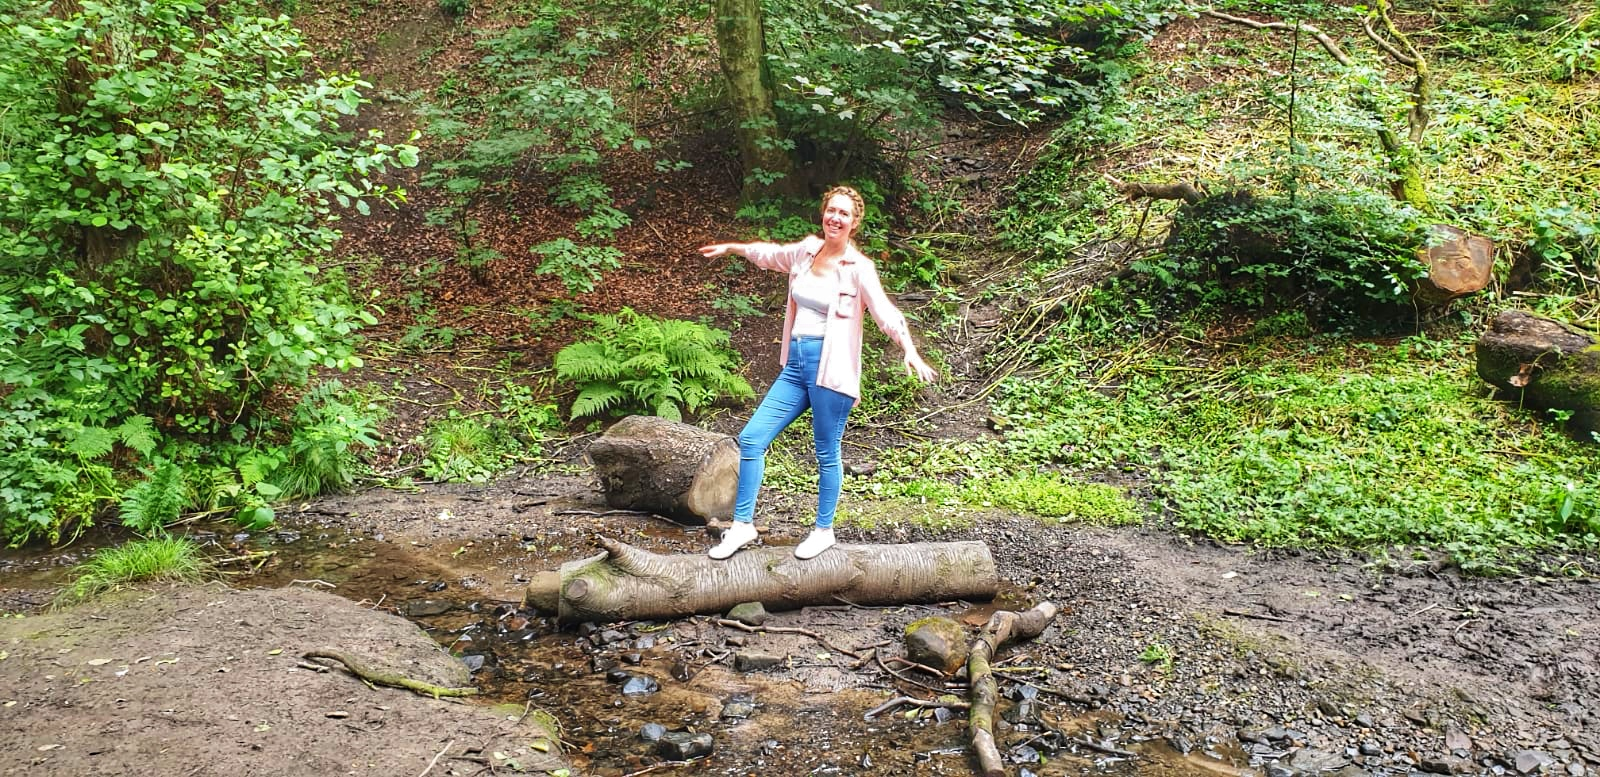 Nicola stood on a log in Fairy Glen in Parbold